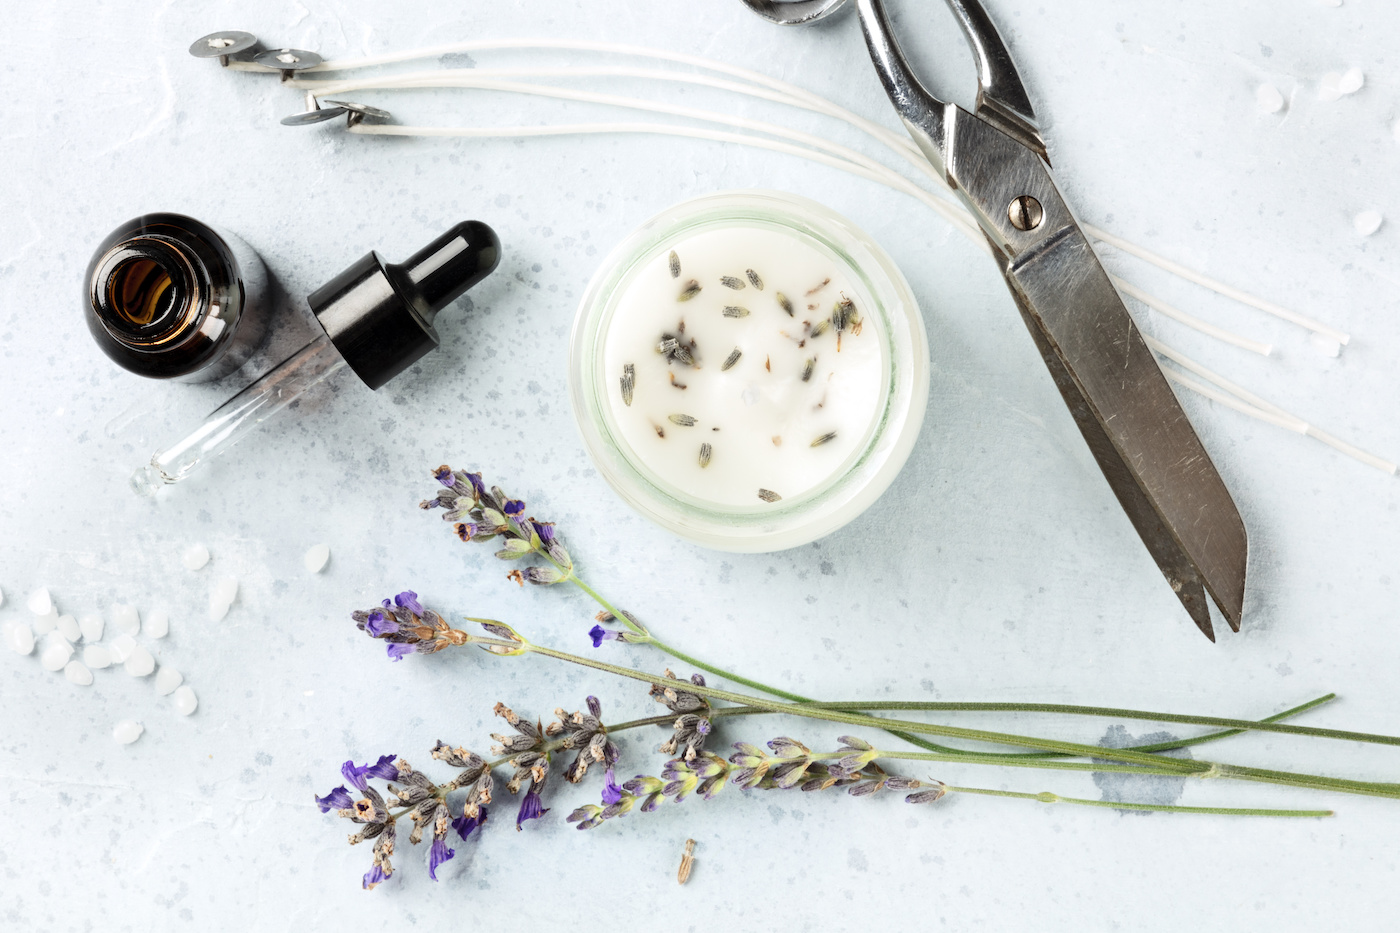 Candle making with lavender essential oils